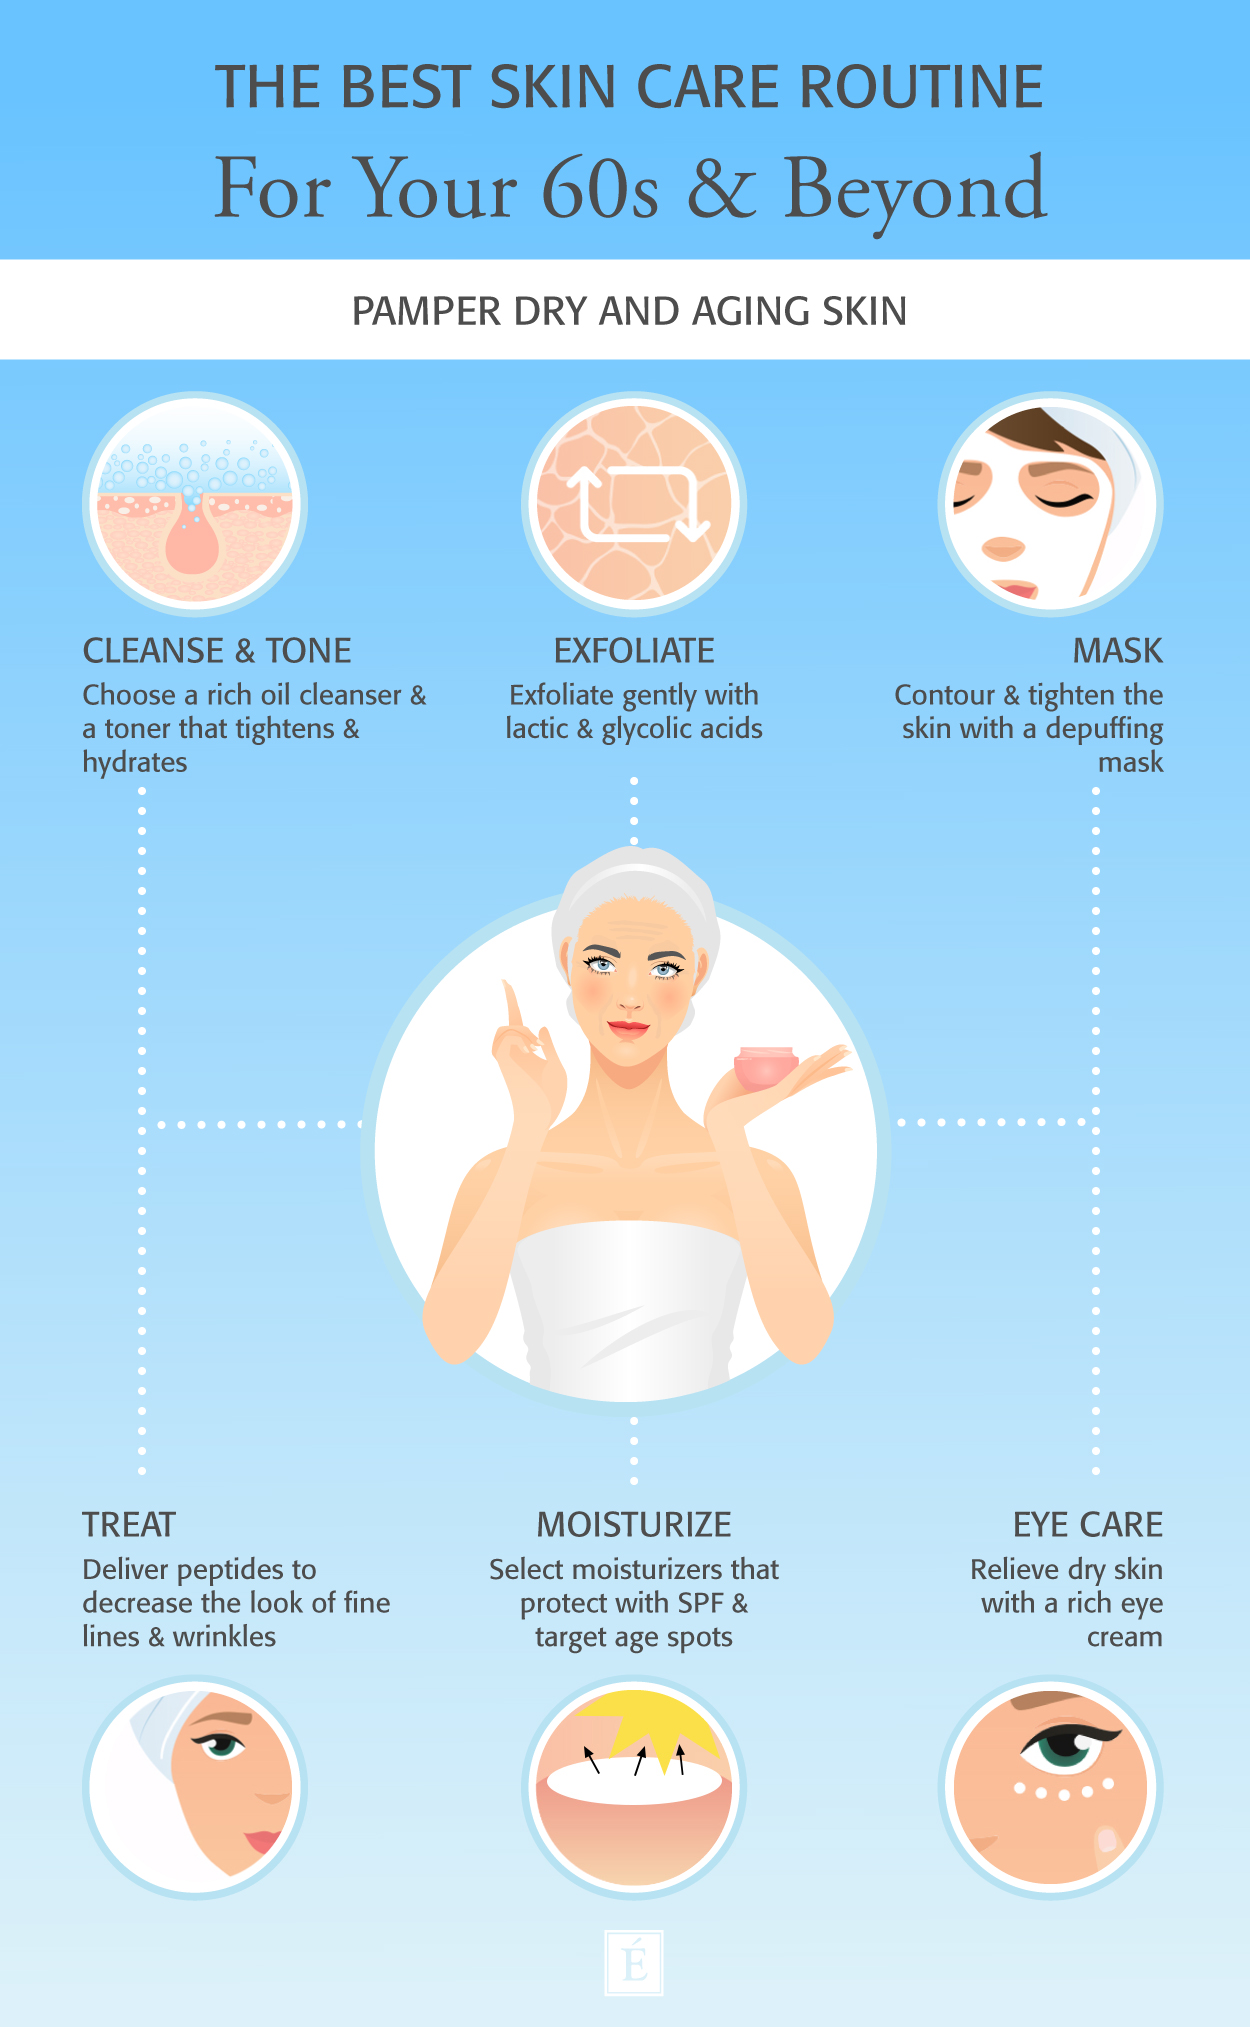 how+to+take+care+of+your+skin+in+your+60s